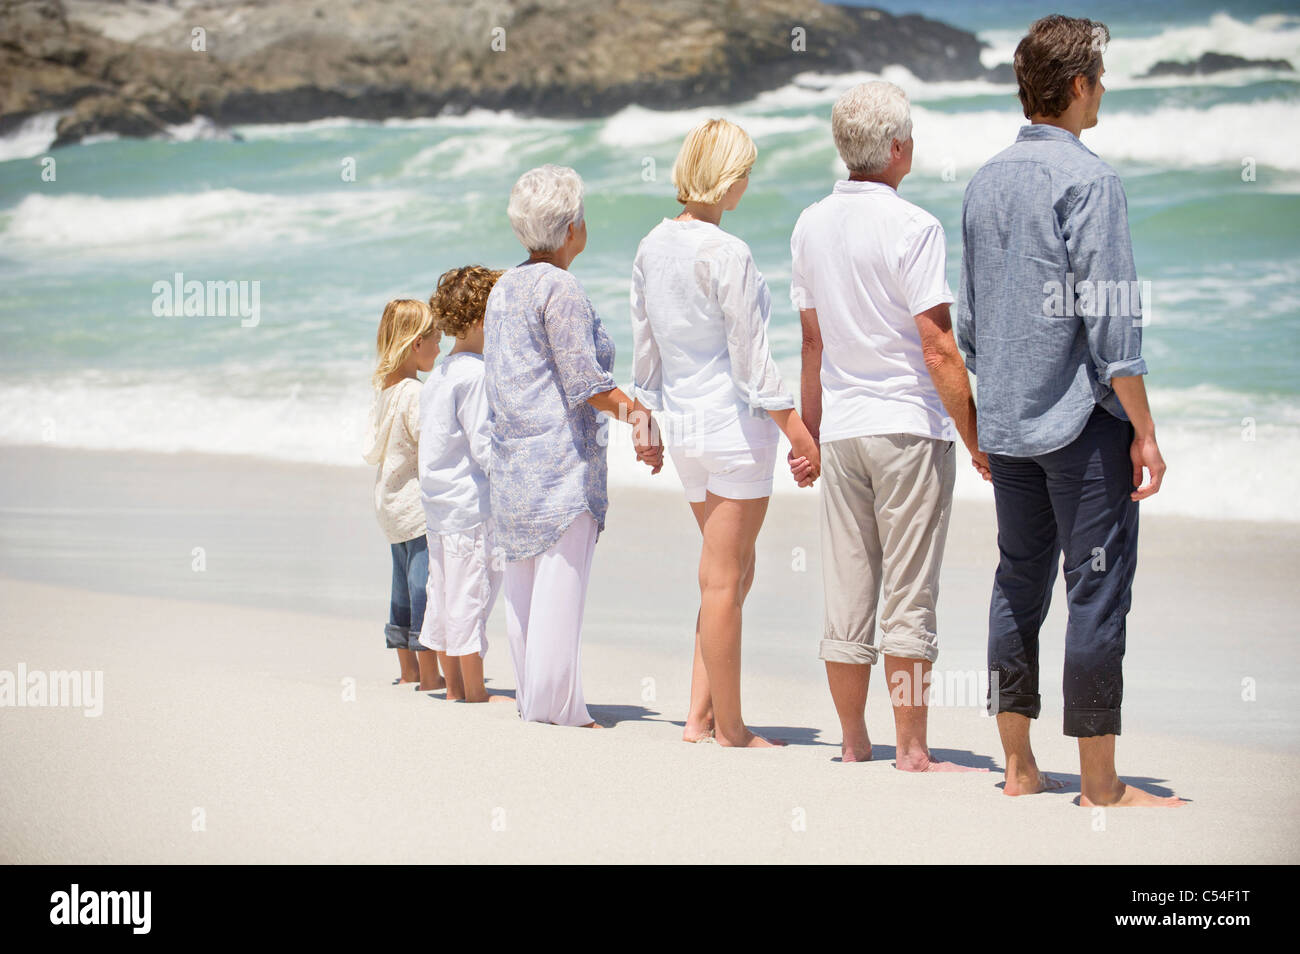 Rear view of a multi generation family standing on the beach - Stock Image